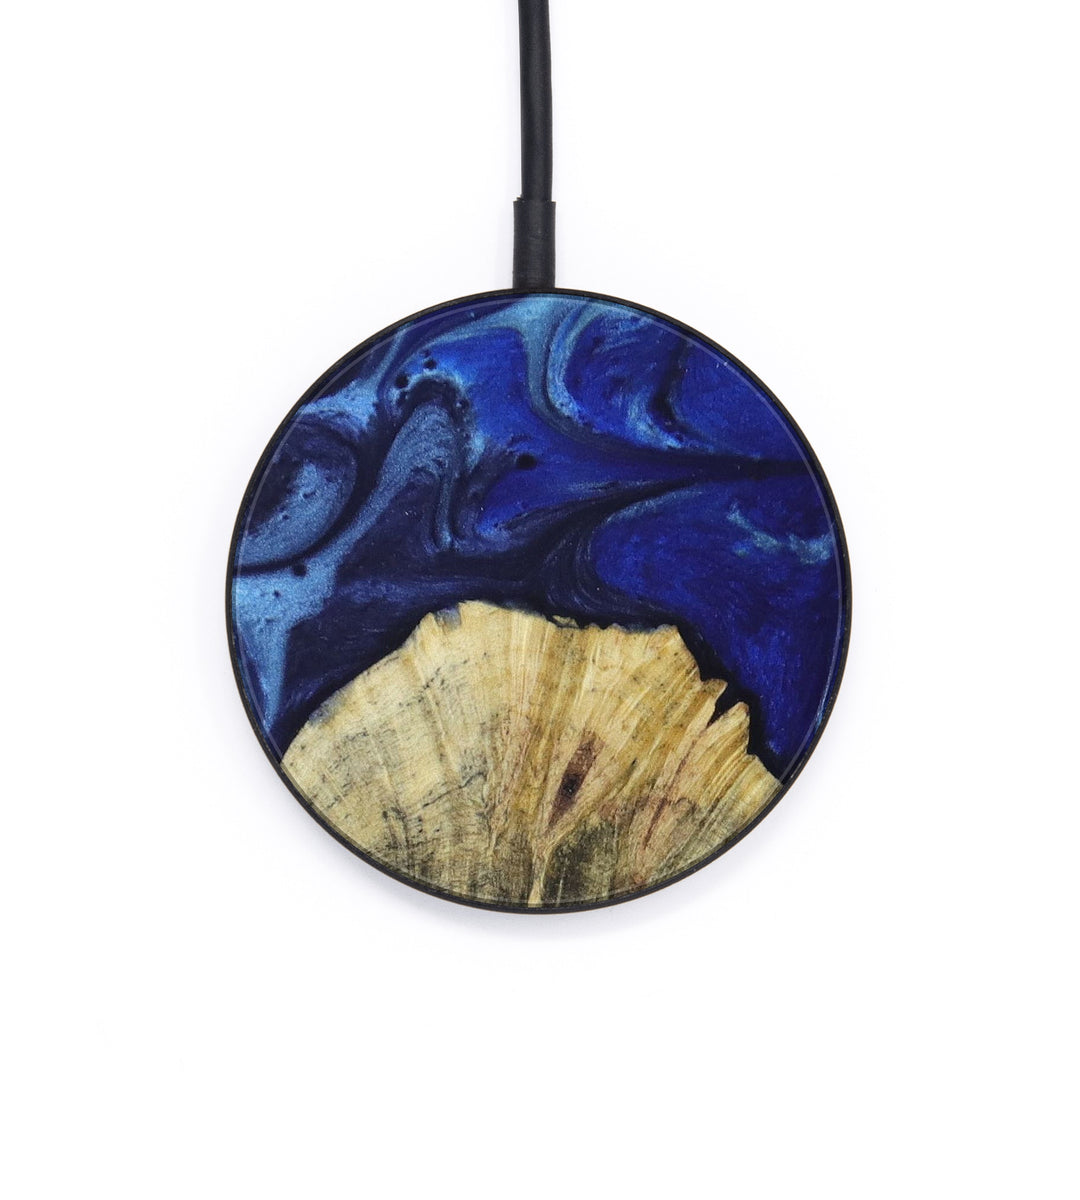 Circle Wood+Resin Wireless Charger - Tamera (Dark Blue, 392862)